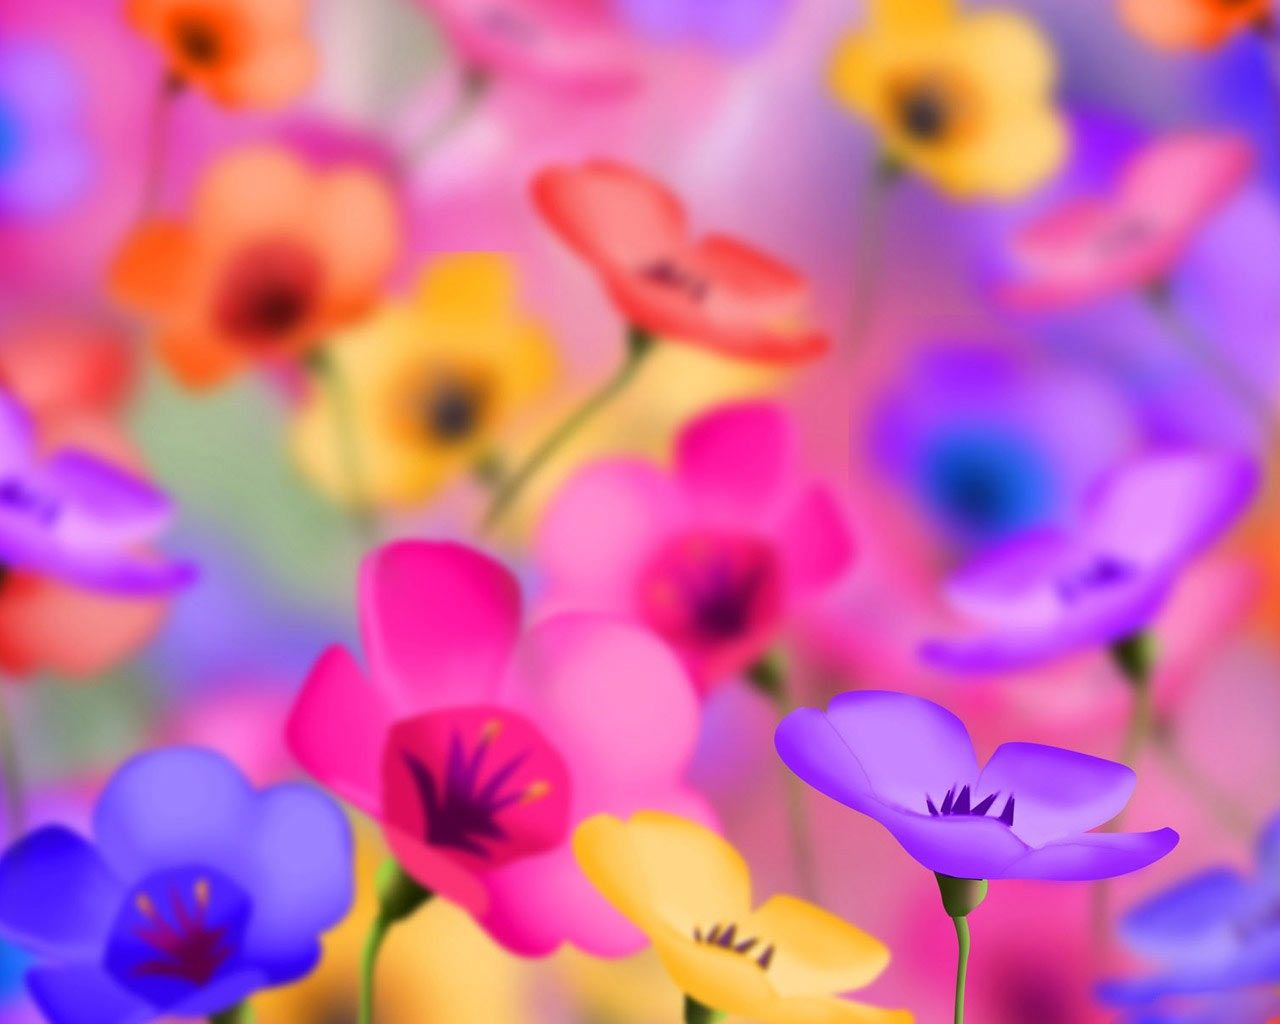 Cool Flower Backgrounds - Wallpaper Cave